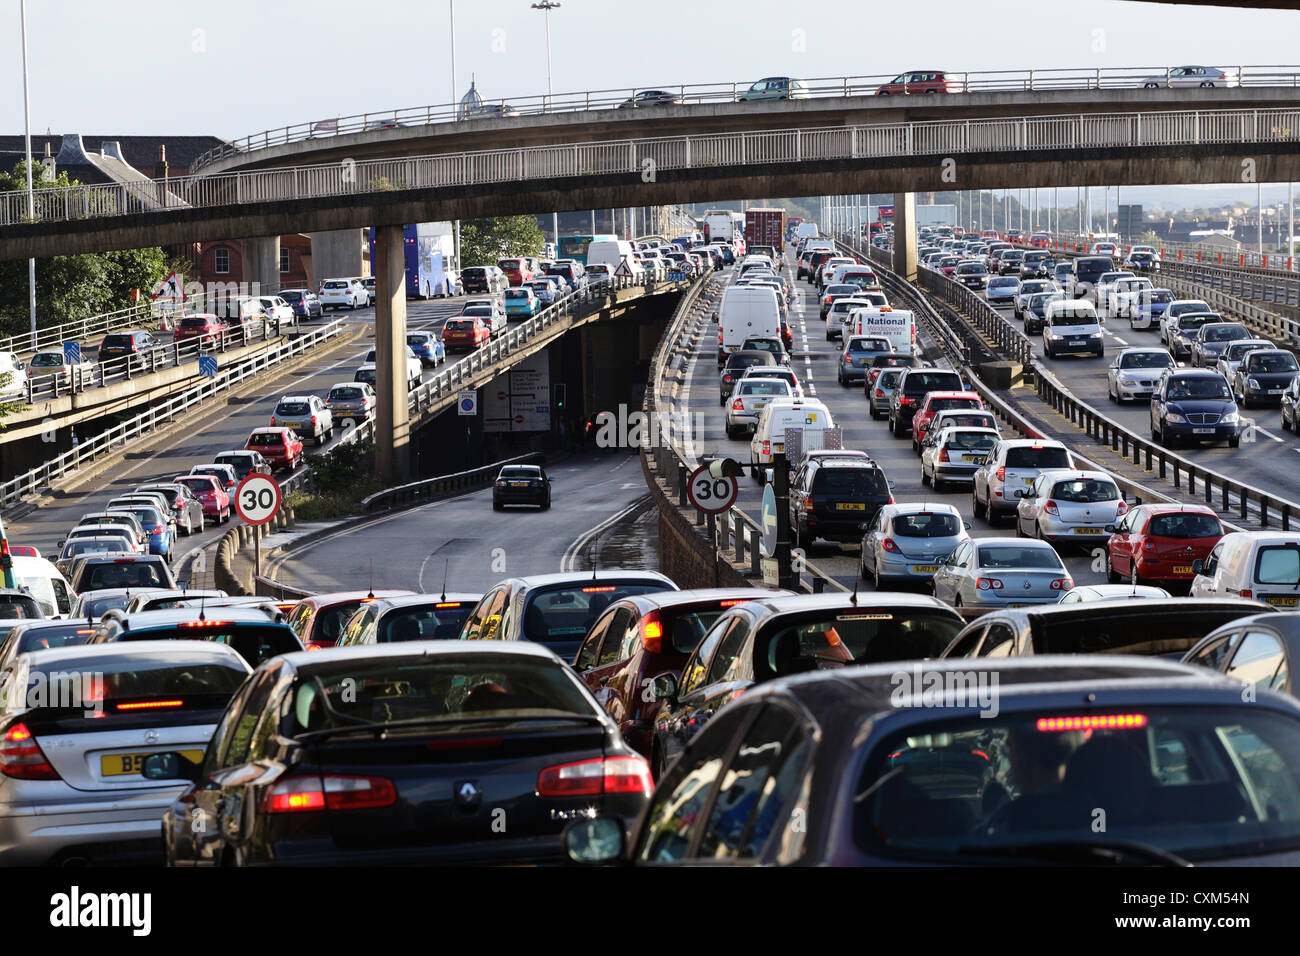 A traffic jam on the M8 Motorway and Kingston Bridge approach roads in Glasgow city centre, Scotland, UK - Stock Image